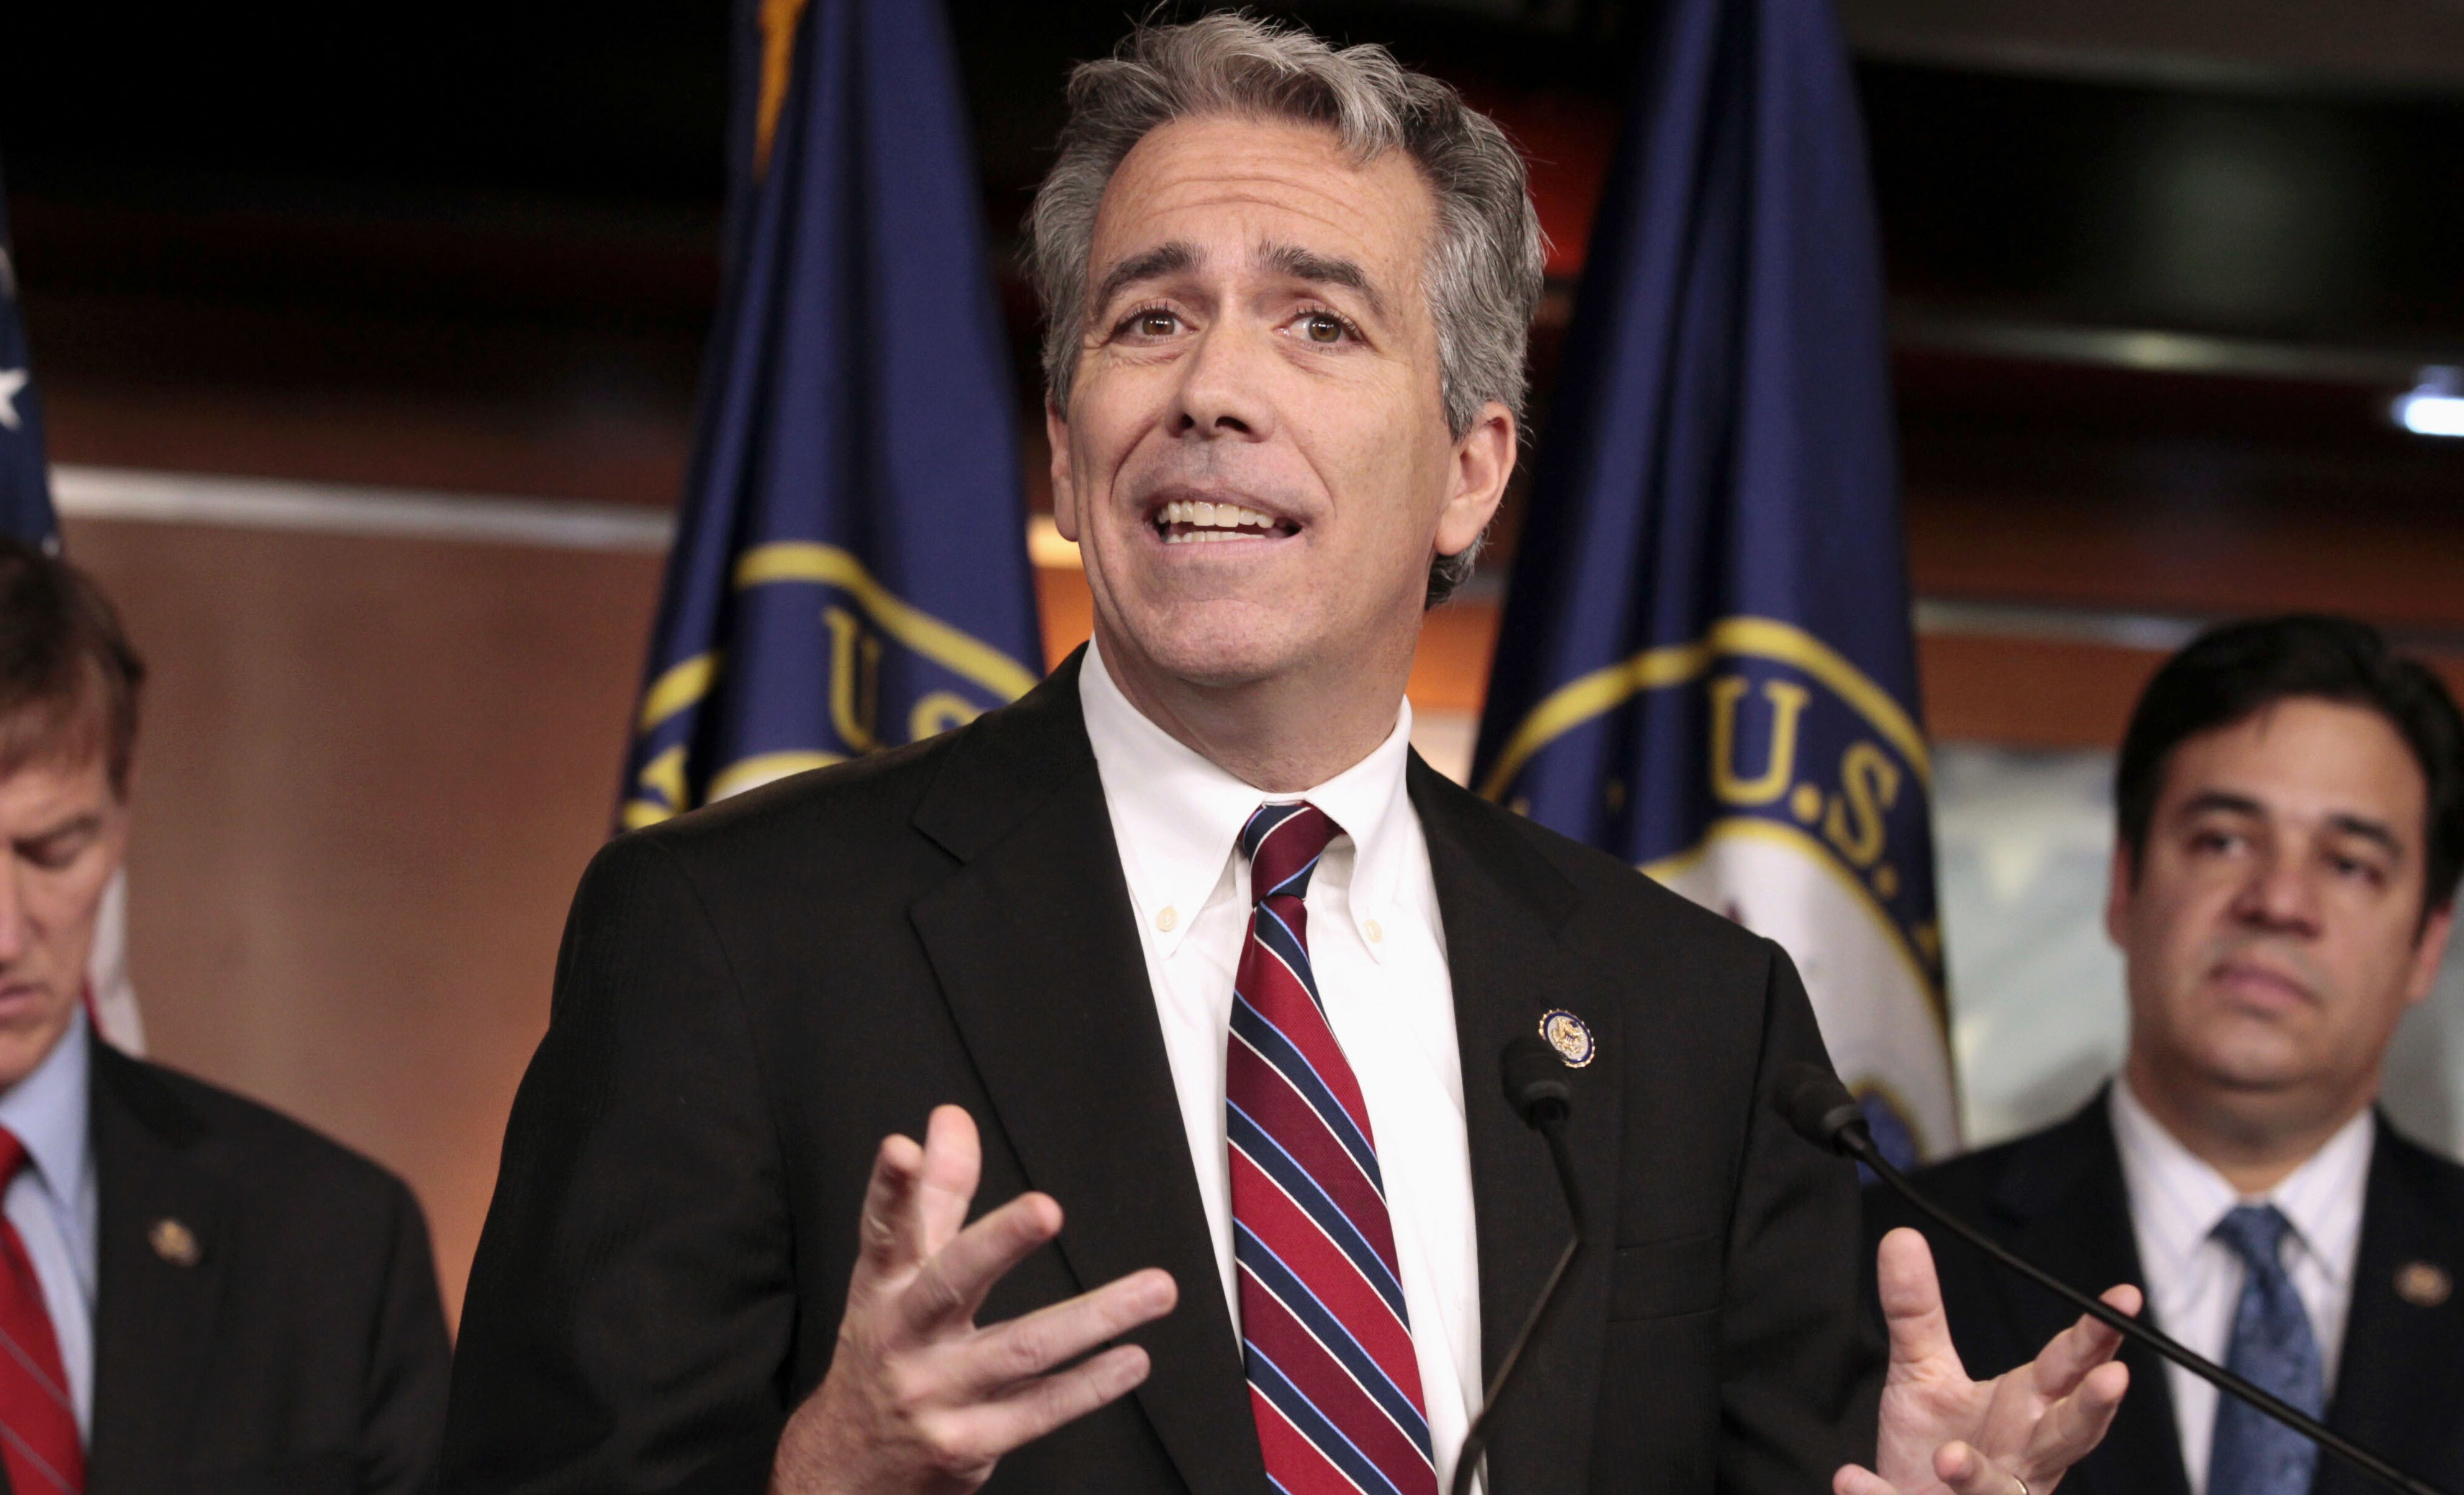 Joe Walsh will challenge Trump for the 2020 Republican presidential nomination